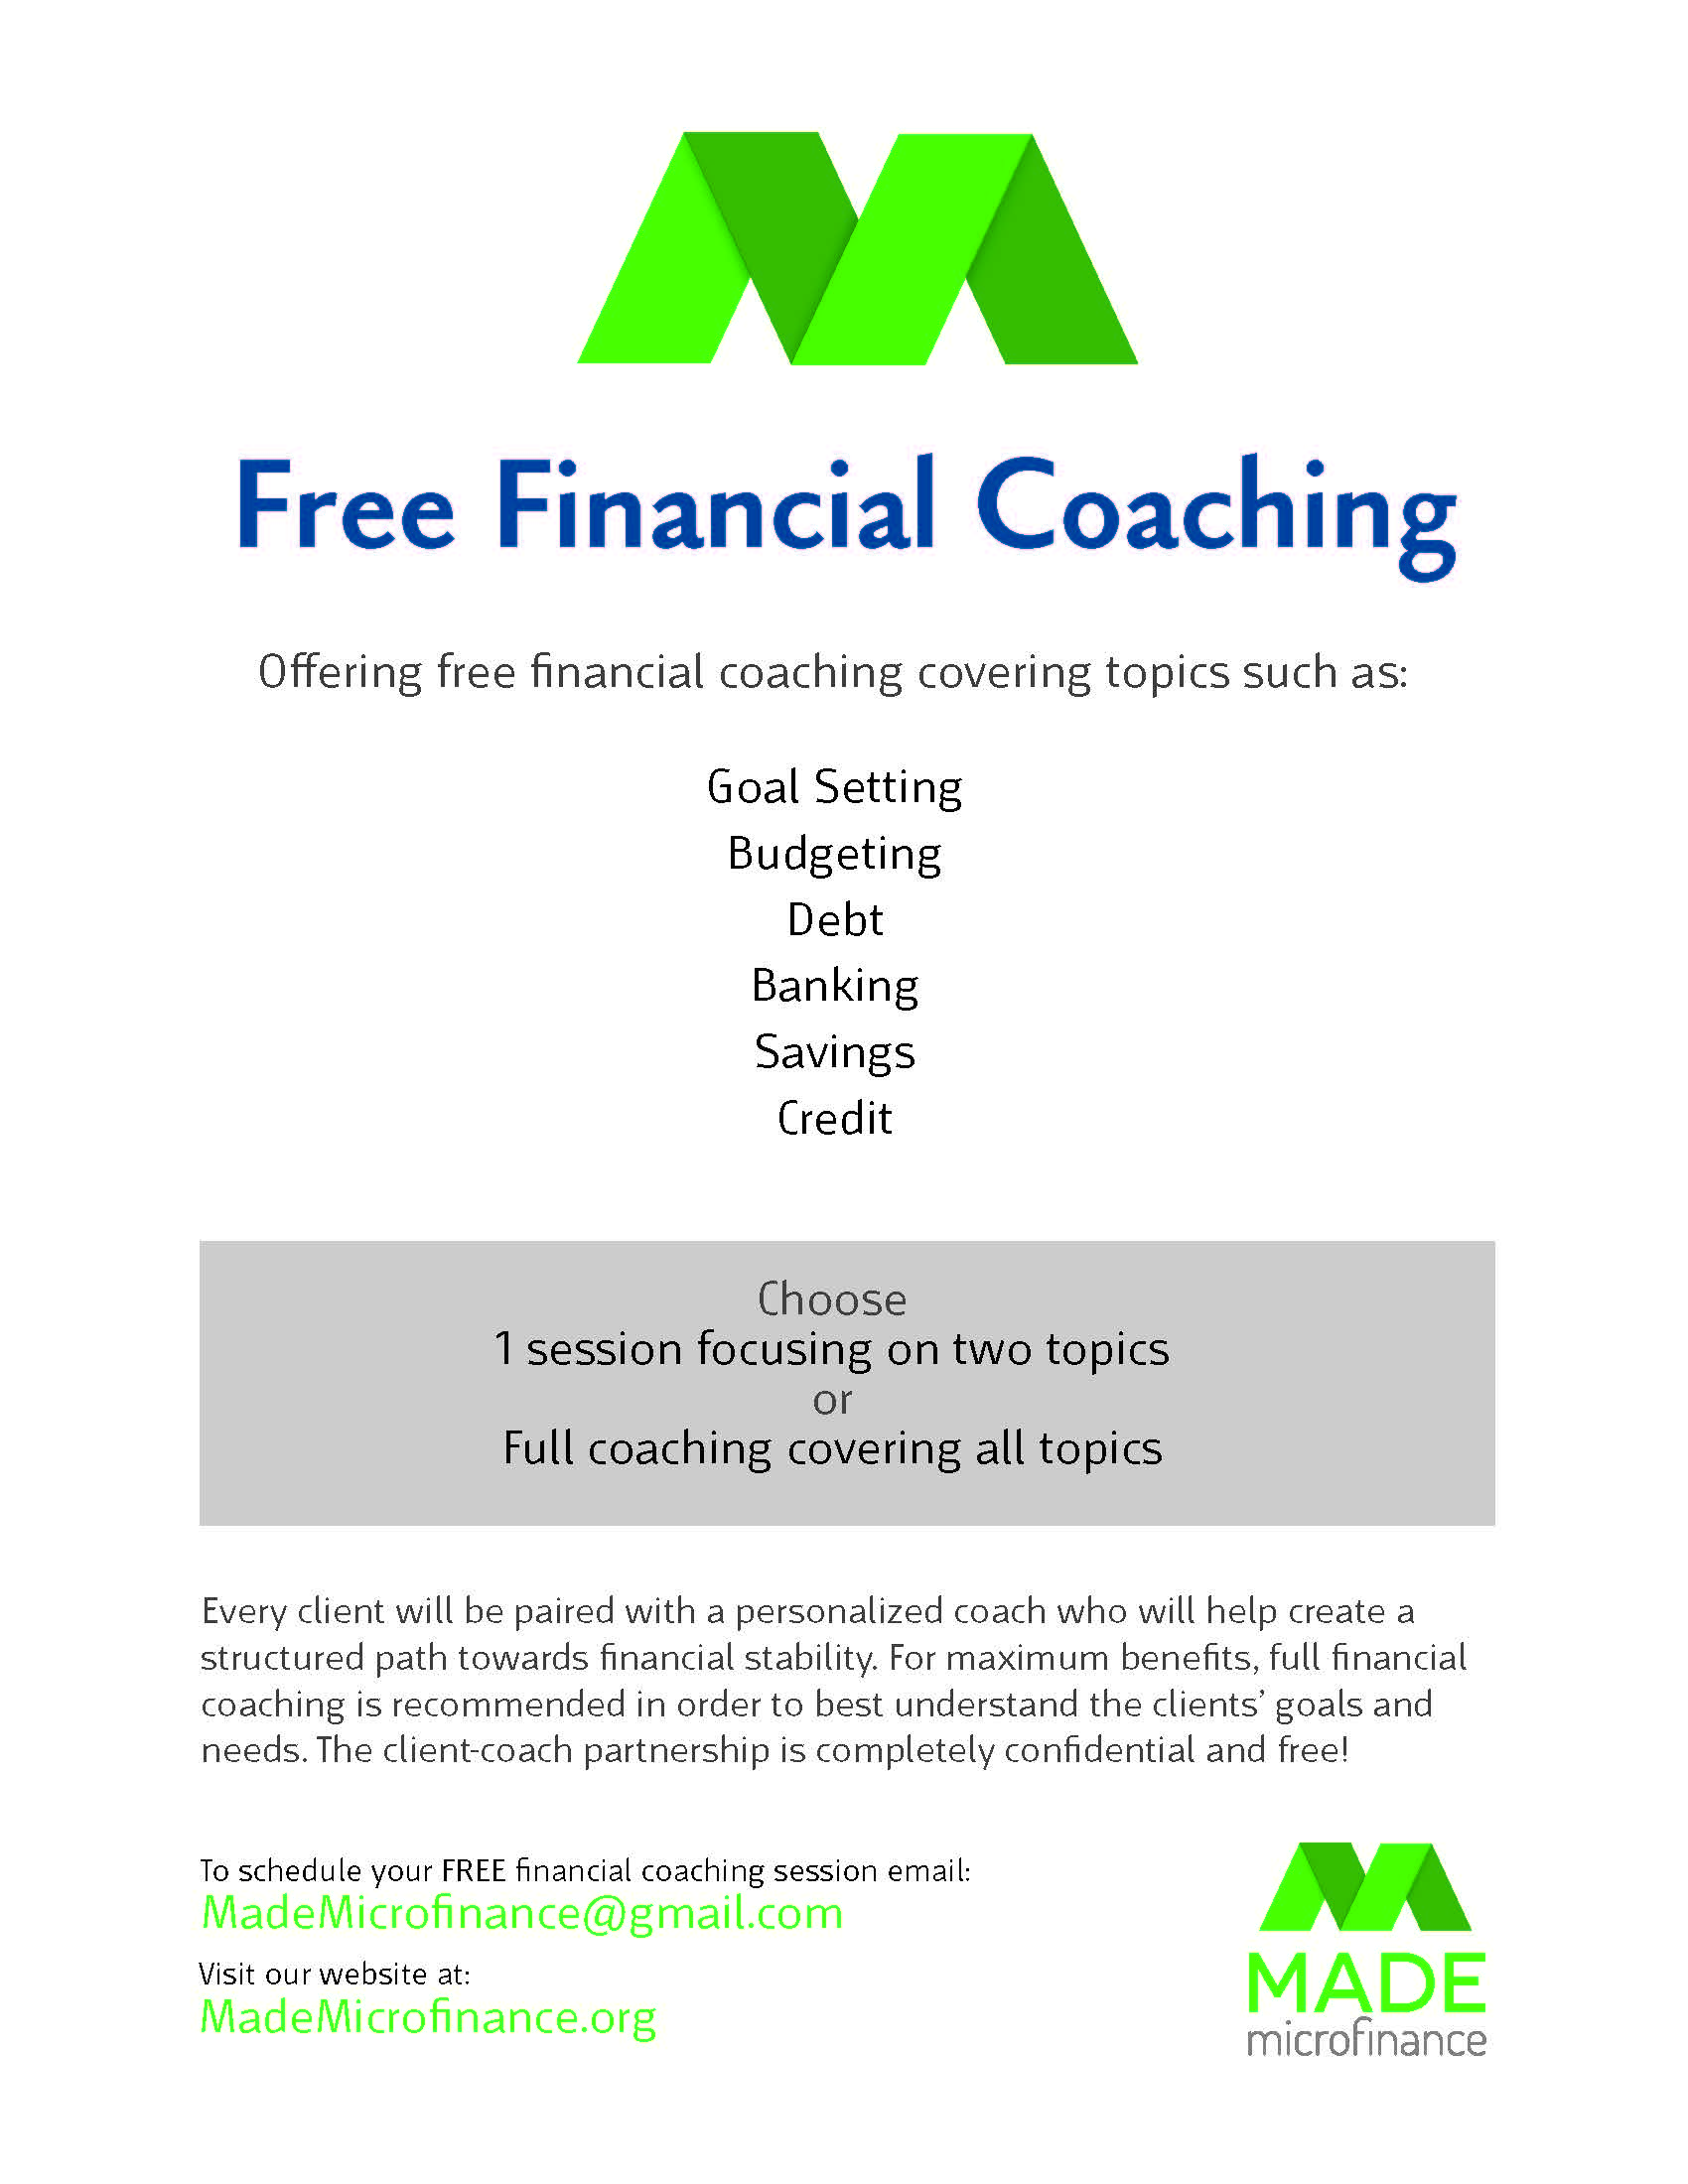 how to become a financial coach